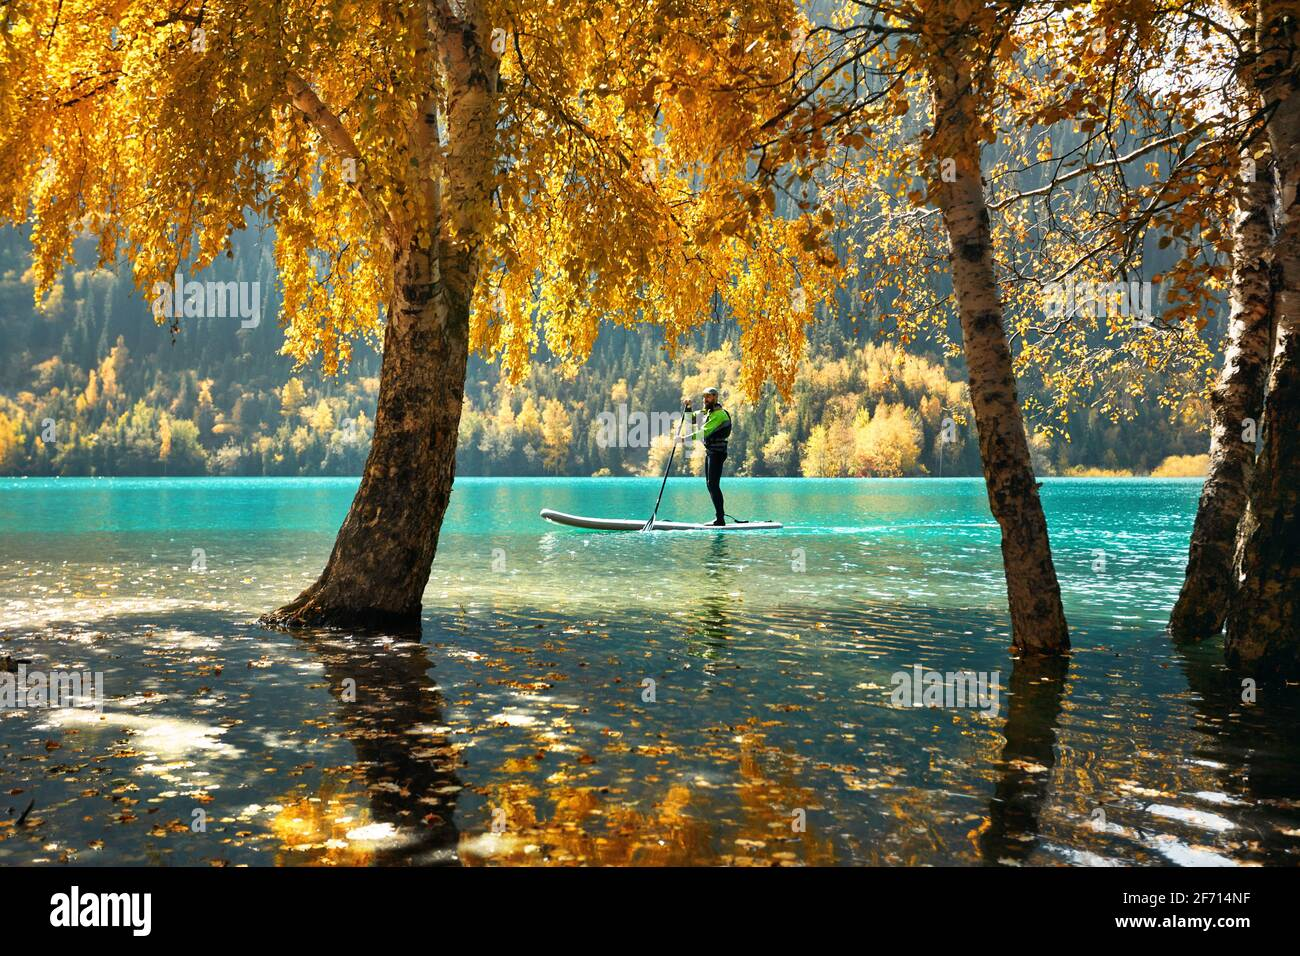 Man floating on a SUP board at mountain lake near yellow forest in autumn time. Adventure at Stand up paddle boarding. Stock Photo